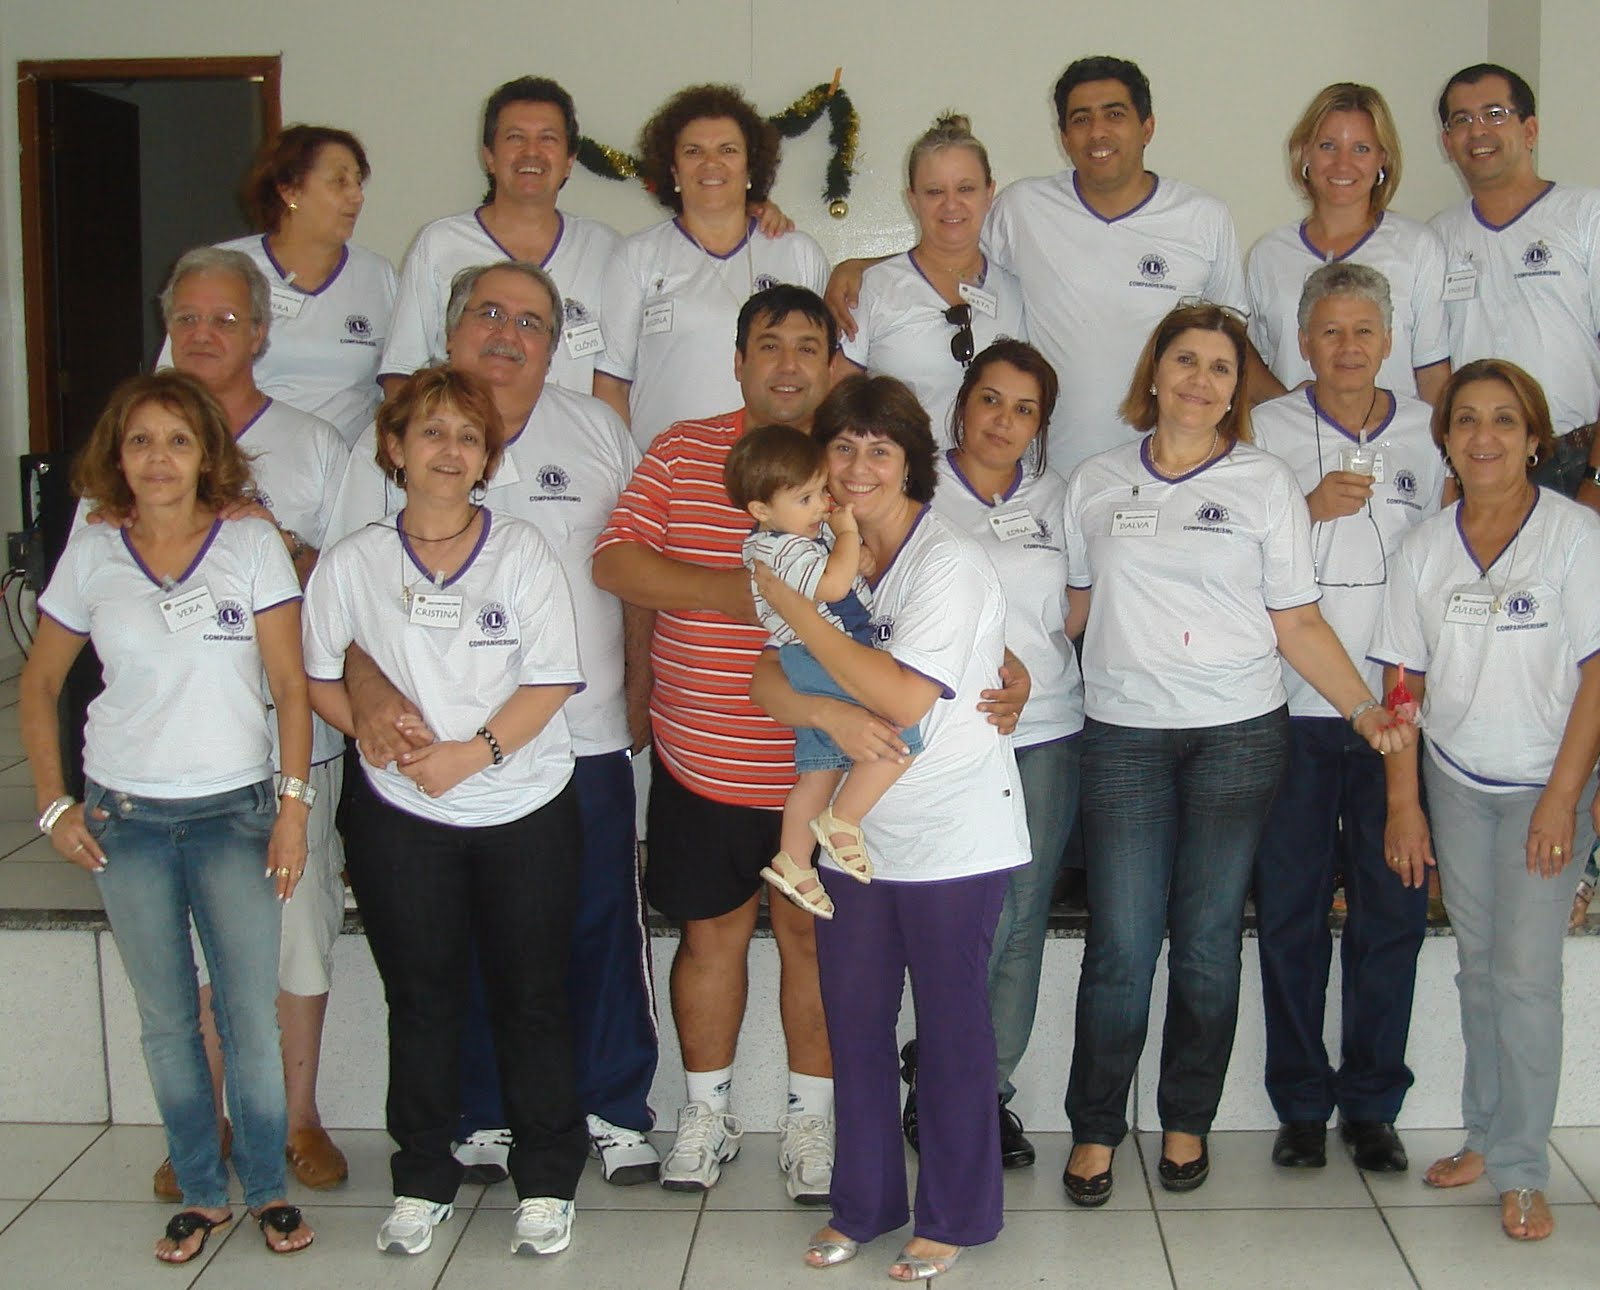 LIONS CLUBE FRANCA SOBRAL